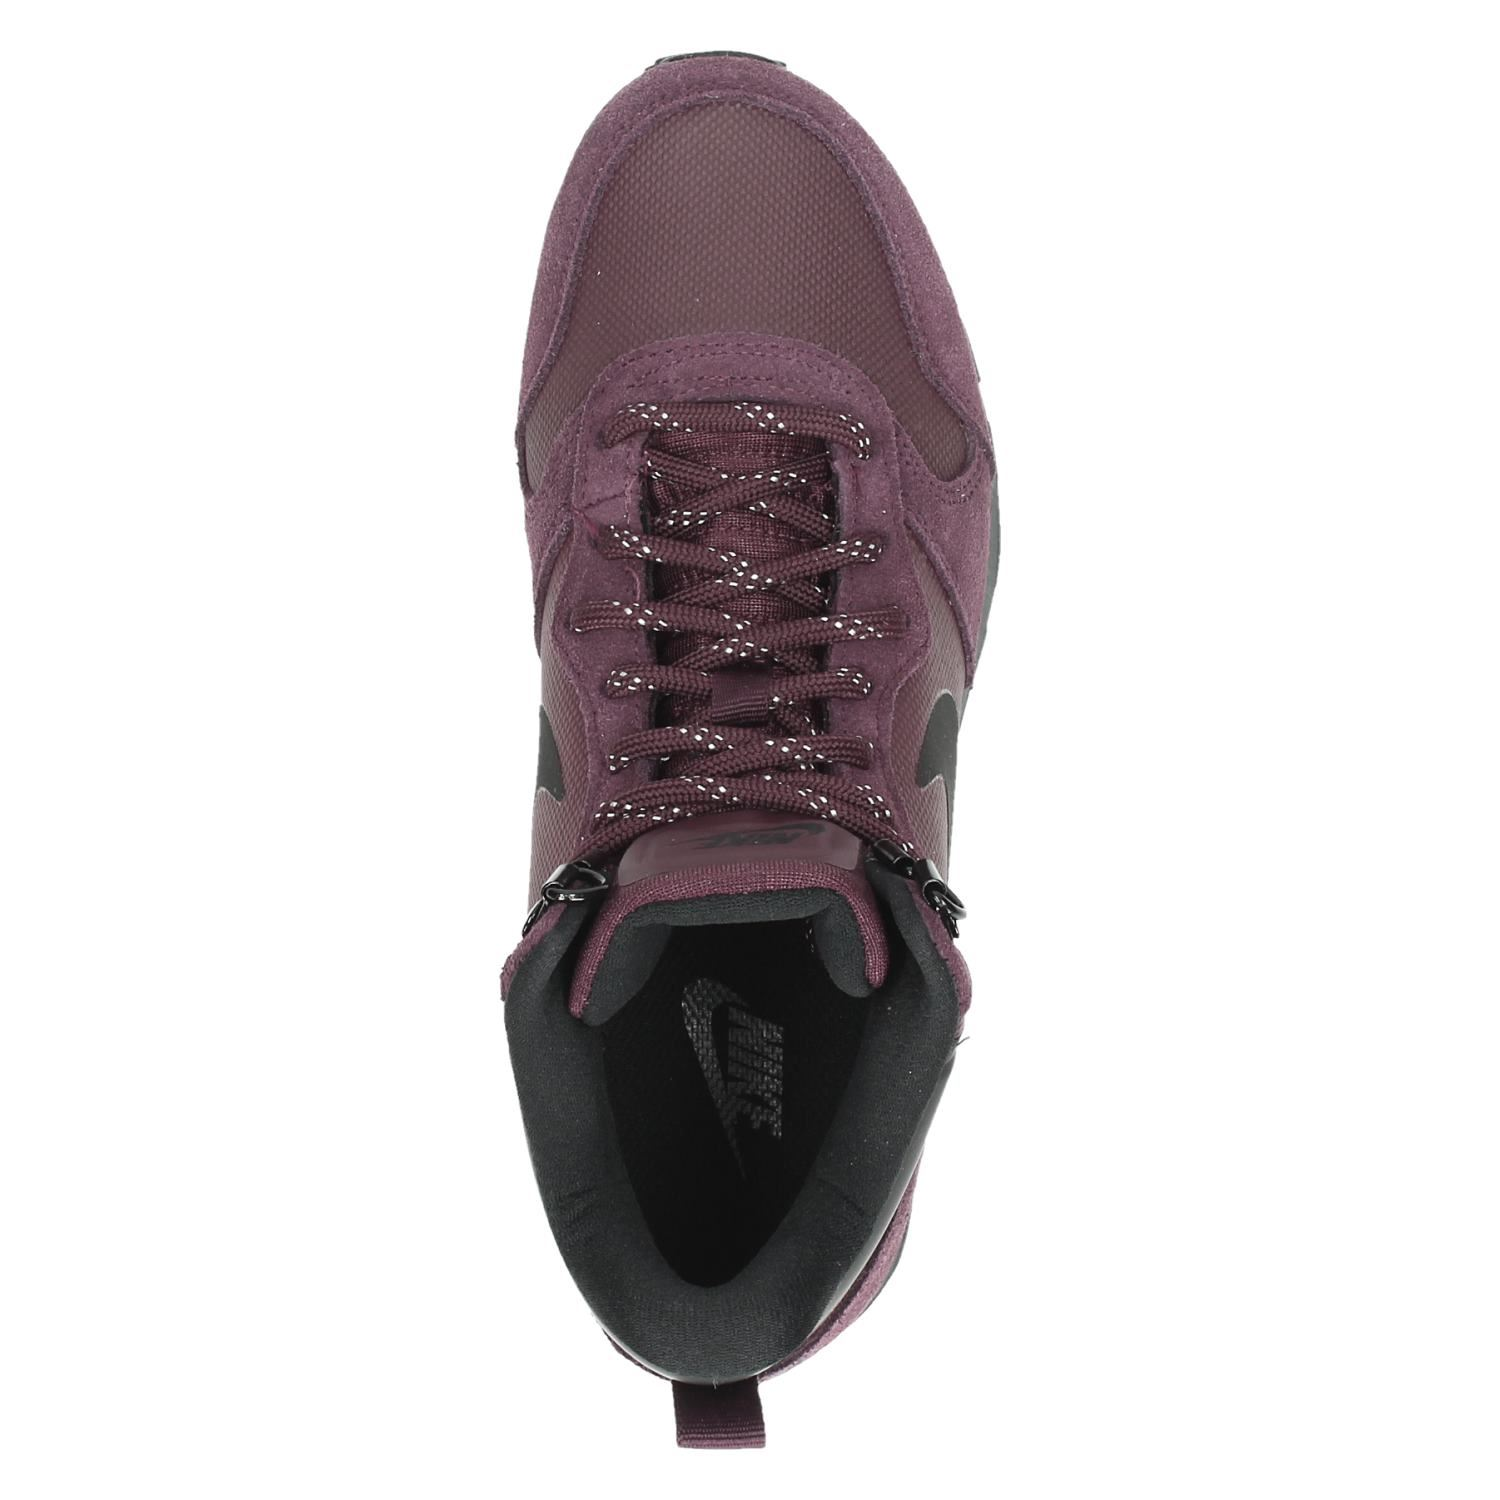 e0f058e6833 Nike MD Runner 2 Mid dames hoge sneakers. Previous